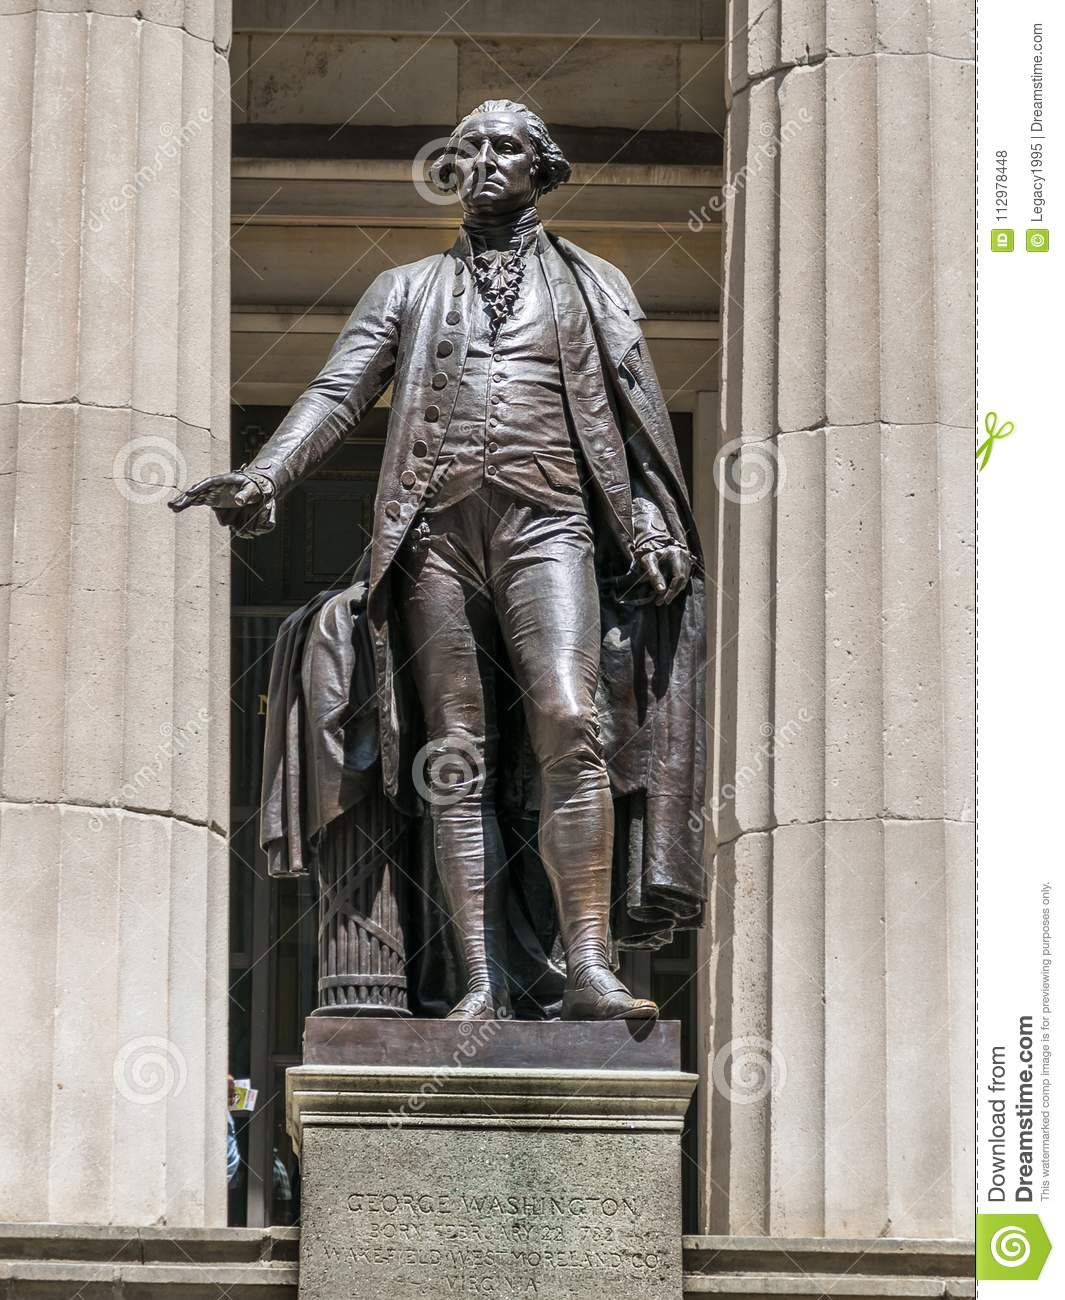 New York City George Washington Statue on Wall Street